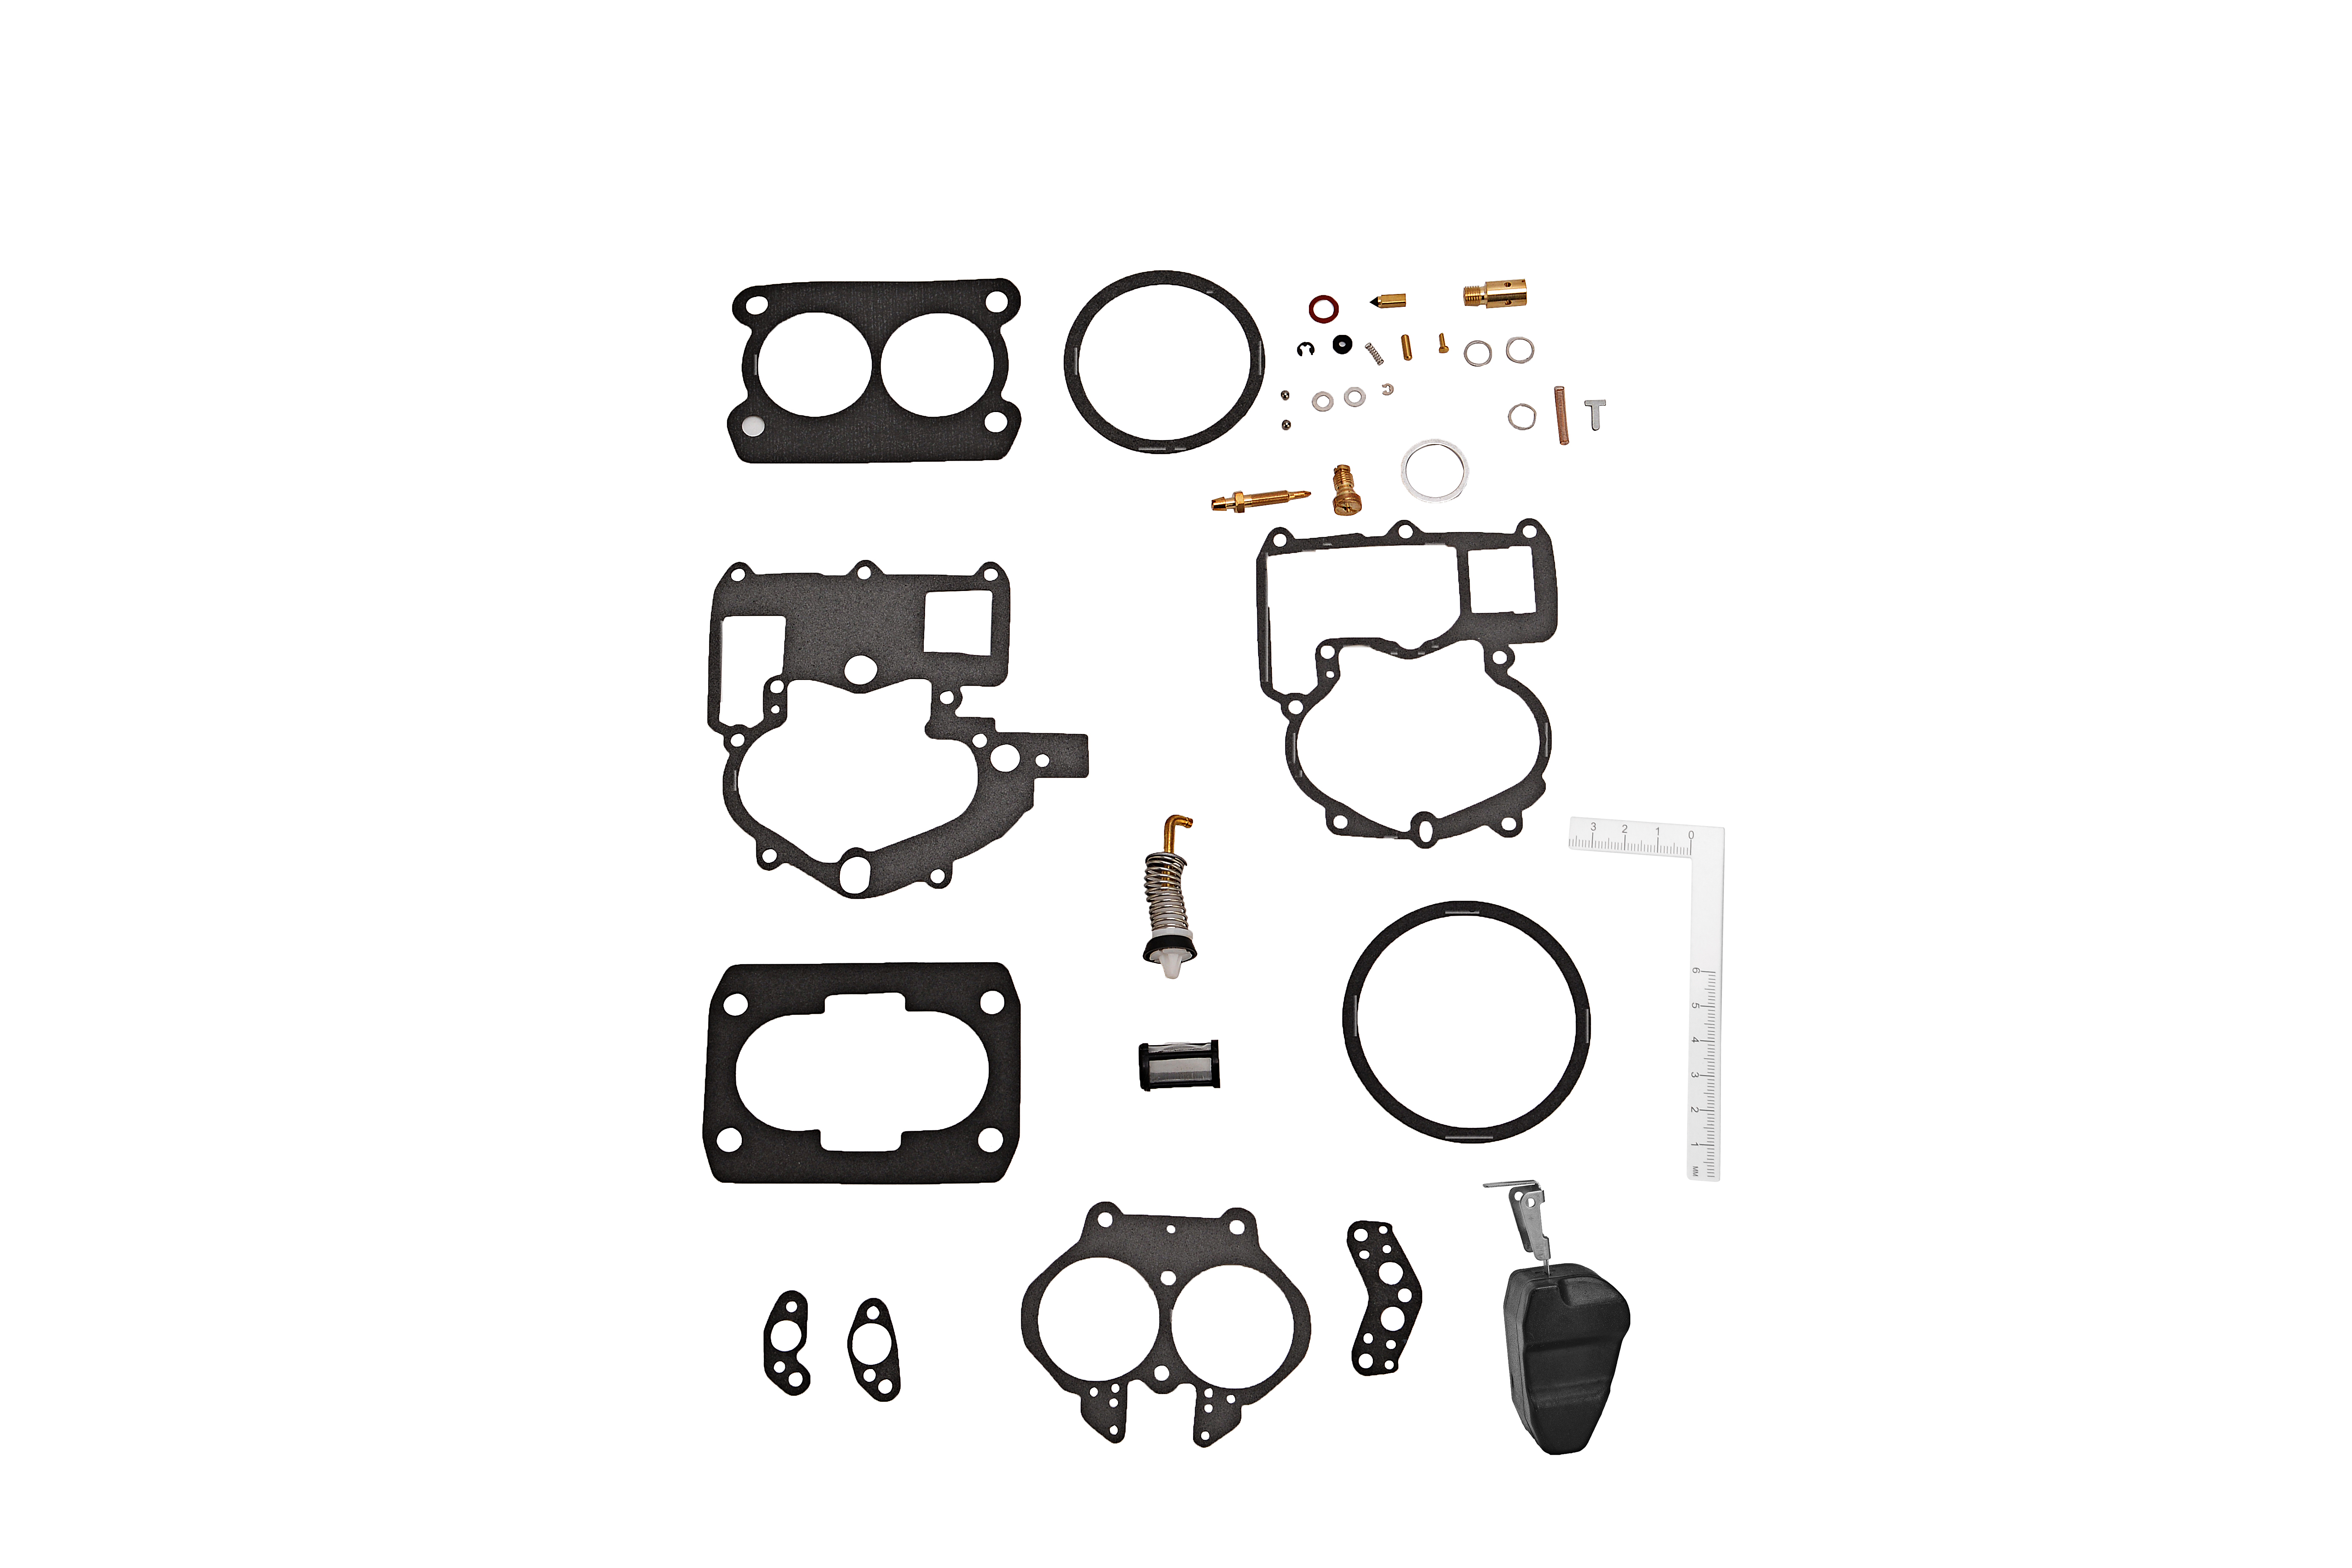 Carb Rebuild Kit fits Mercruiser Rochester 2 BBL Carburetor - Replaces 3302-804844 Image